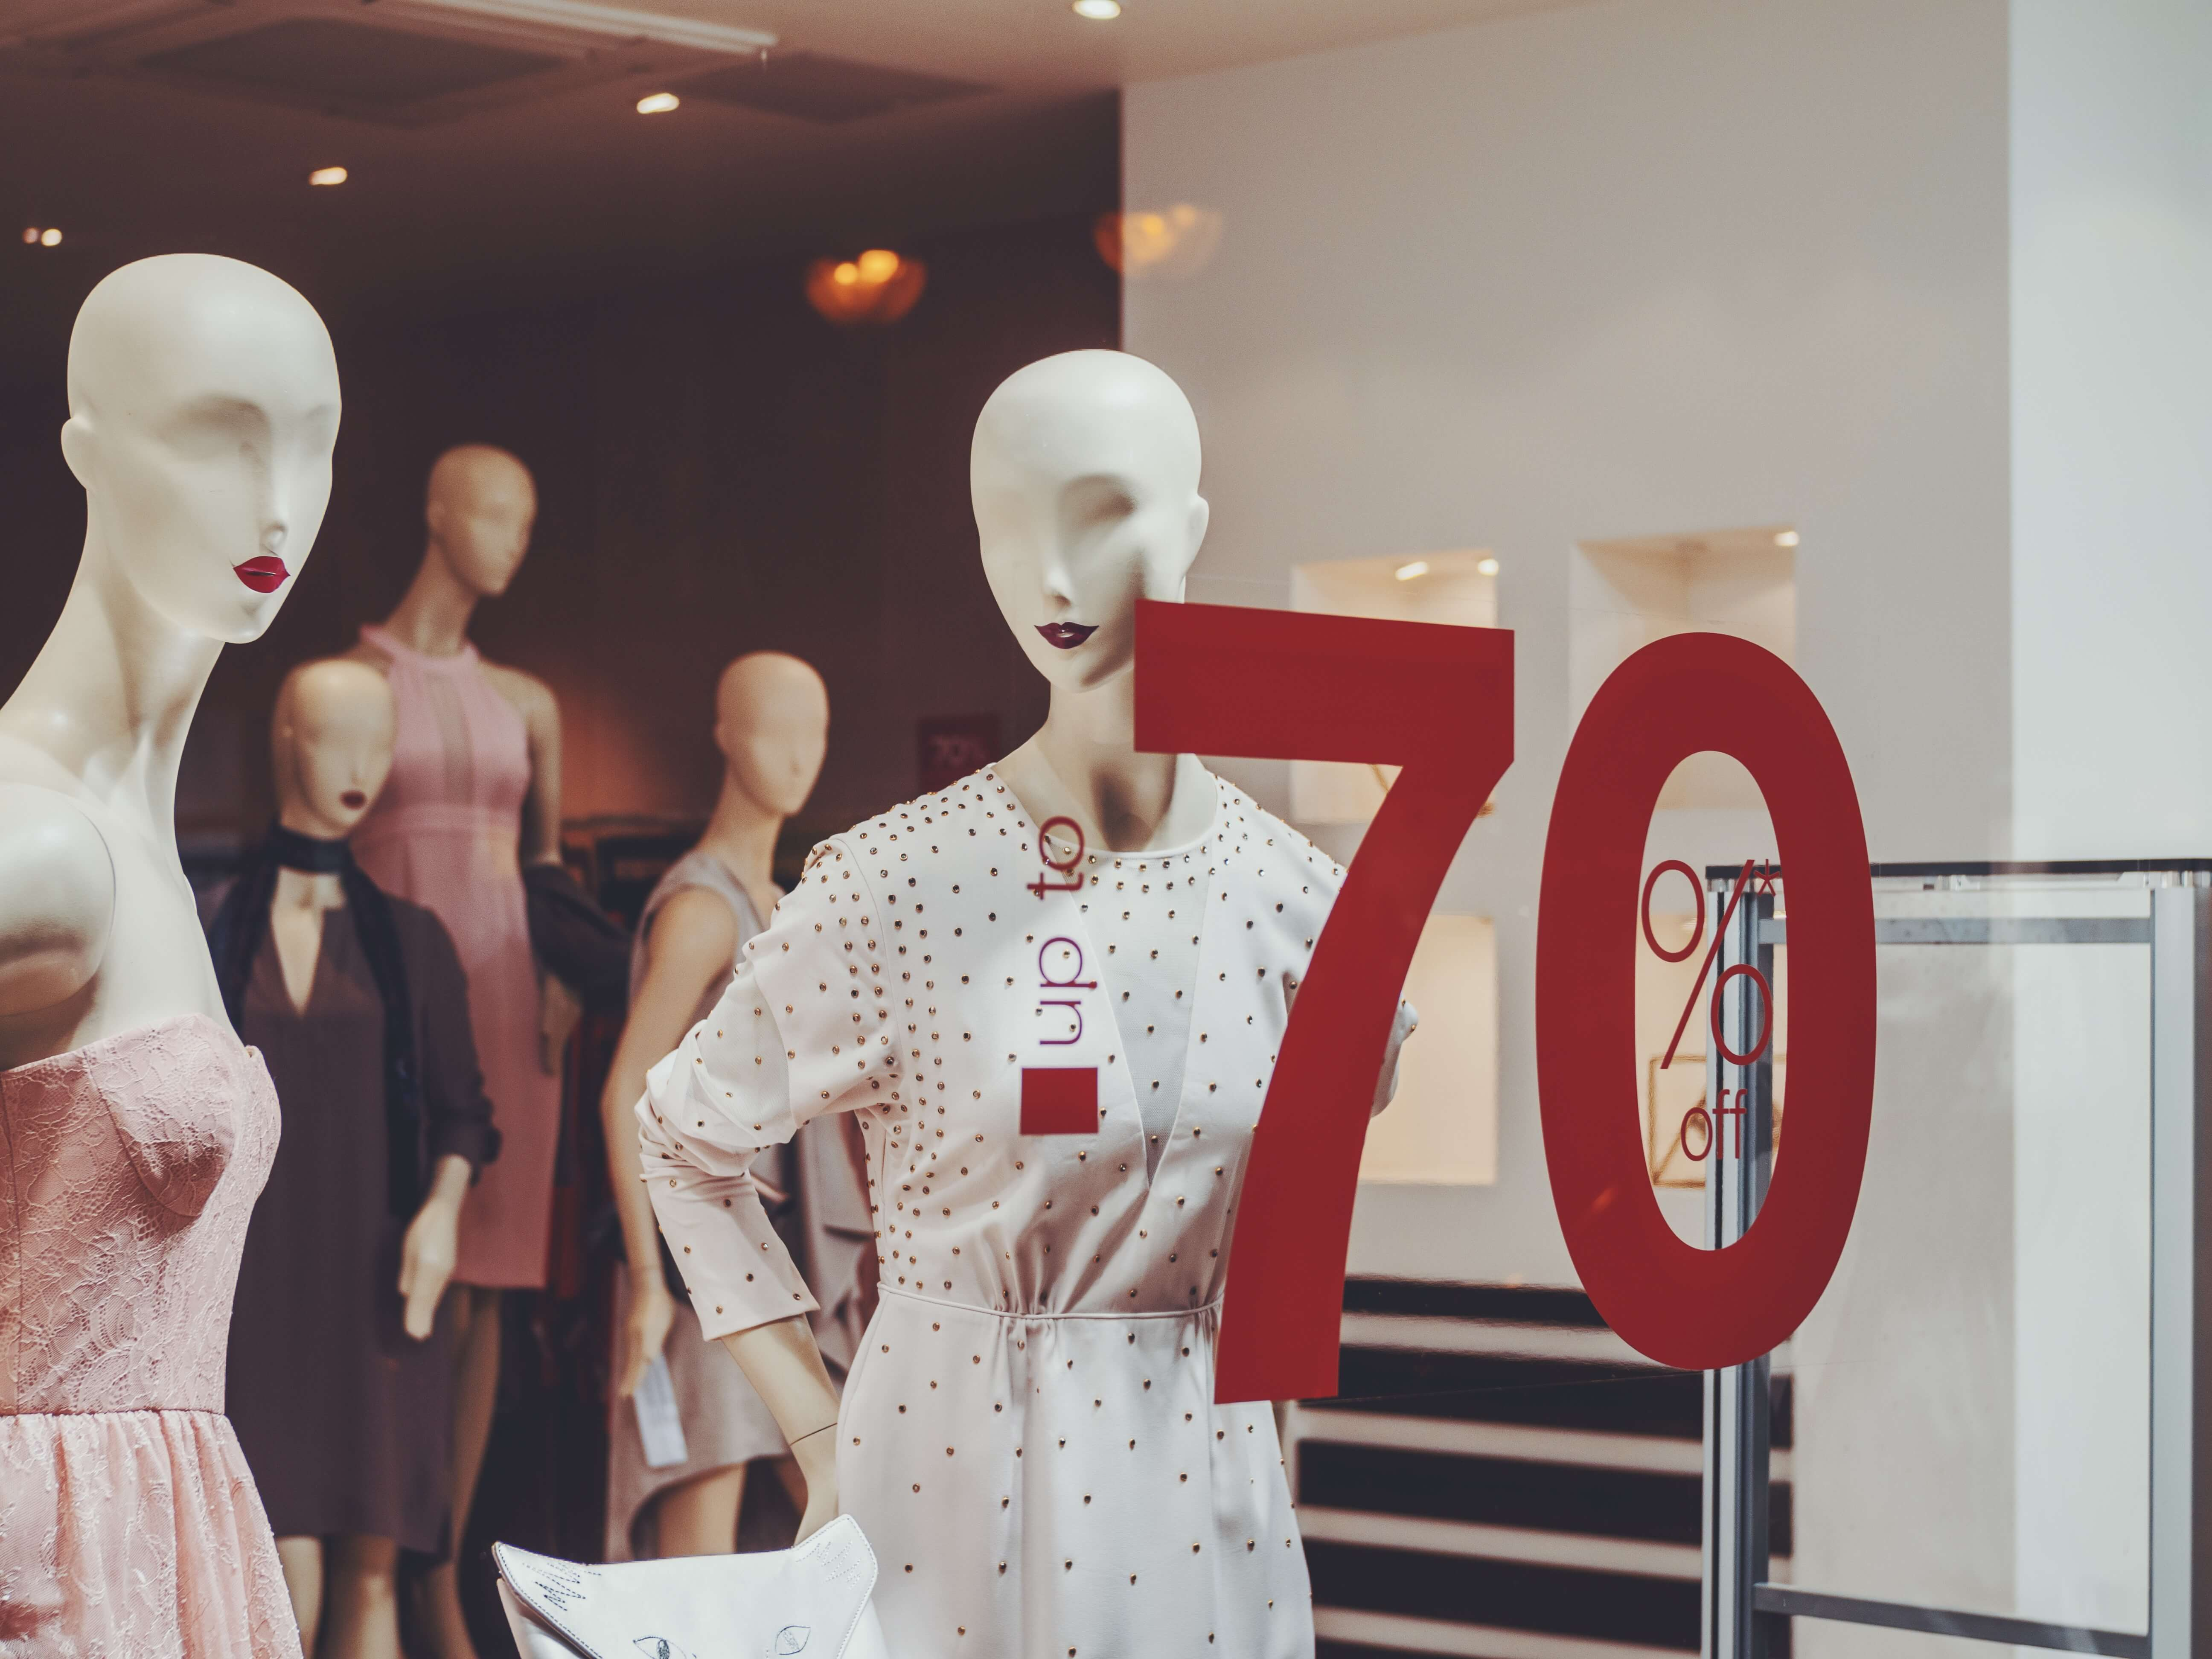 What are the key skills retail managers need